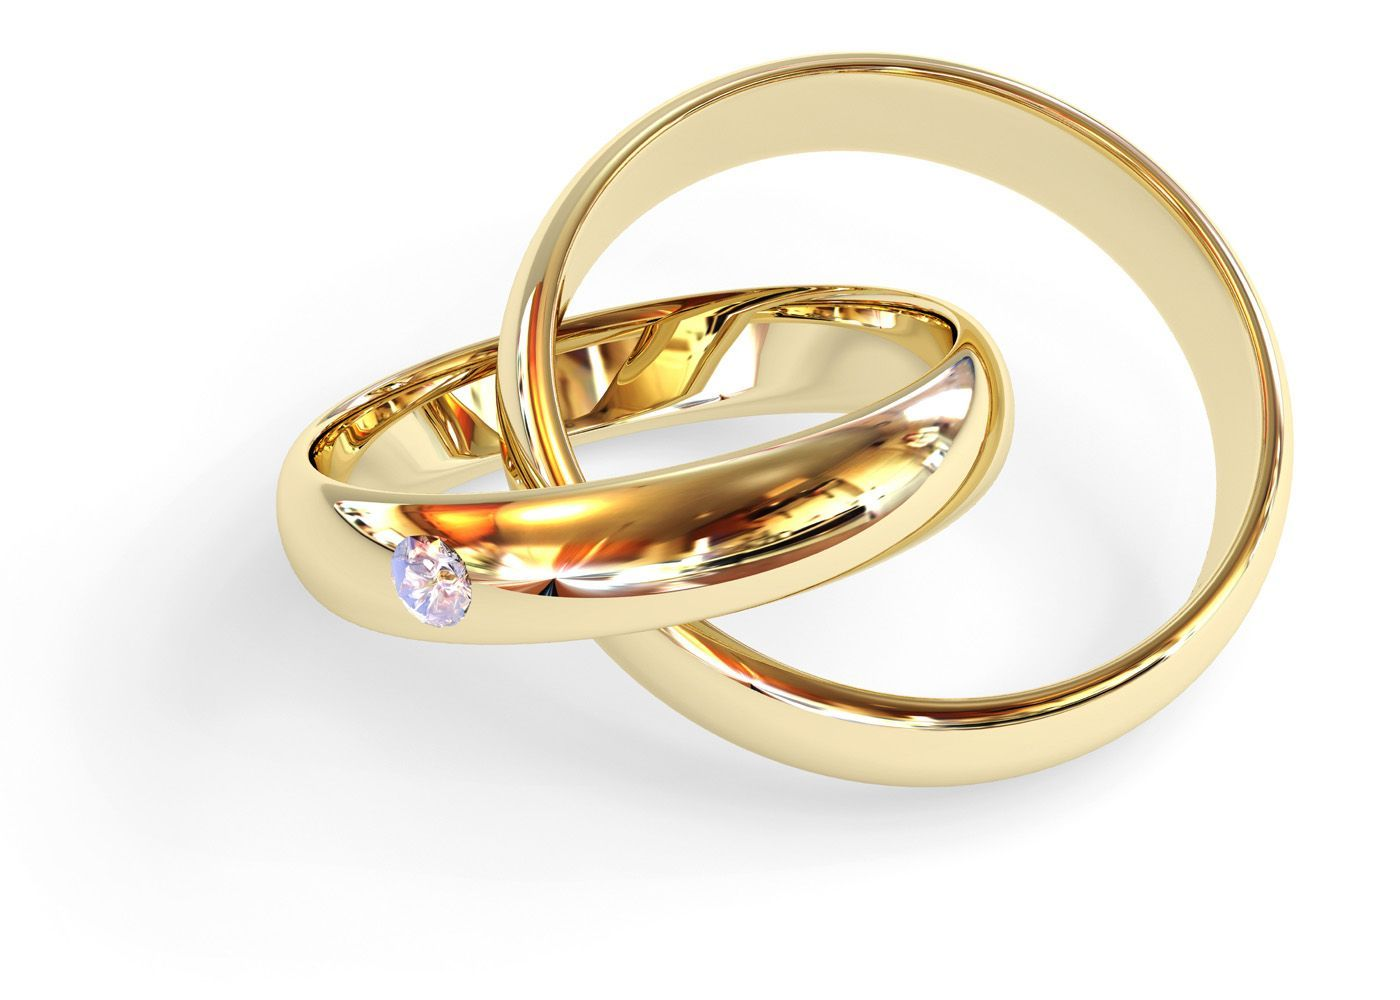 wedding ring couple gold,wedding rings for couples ,wedding rings